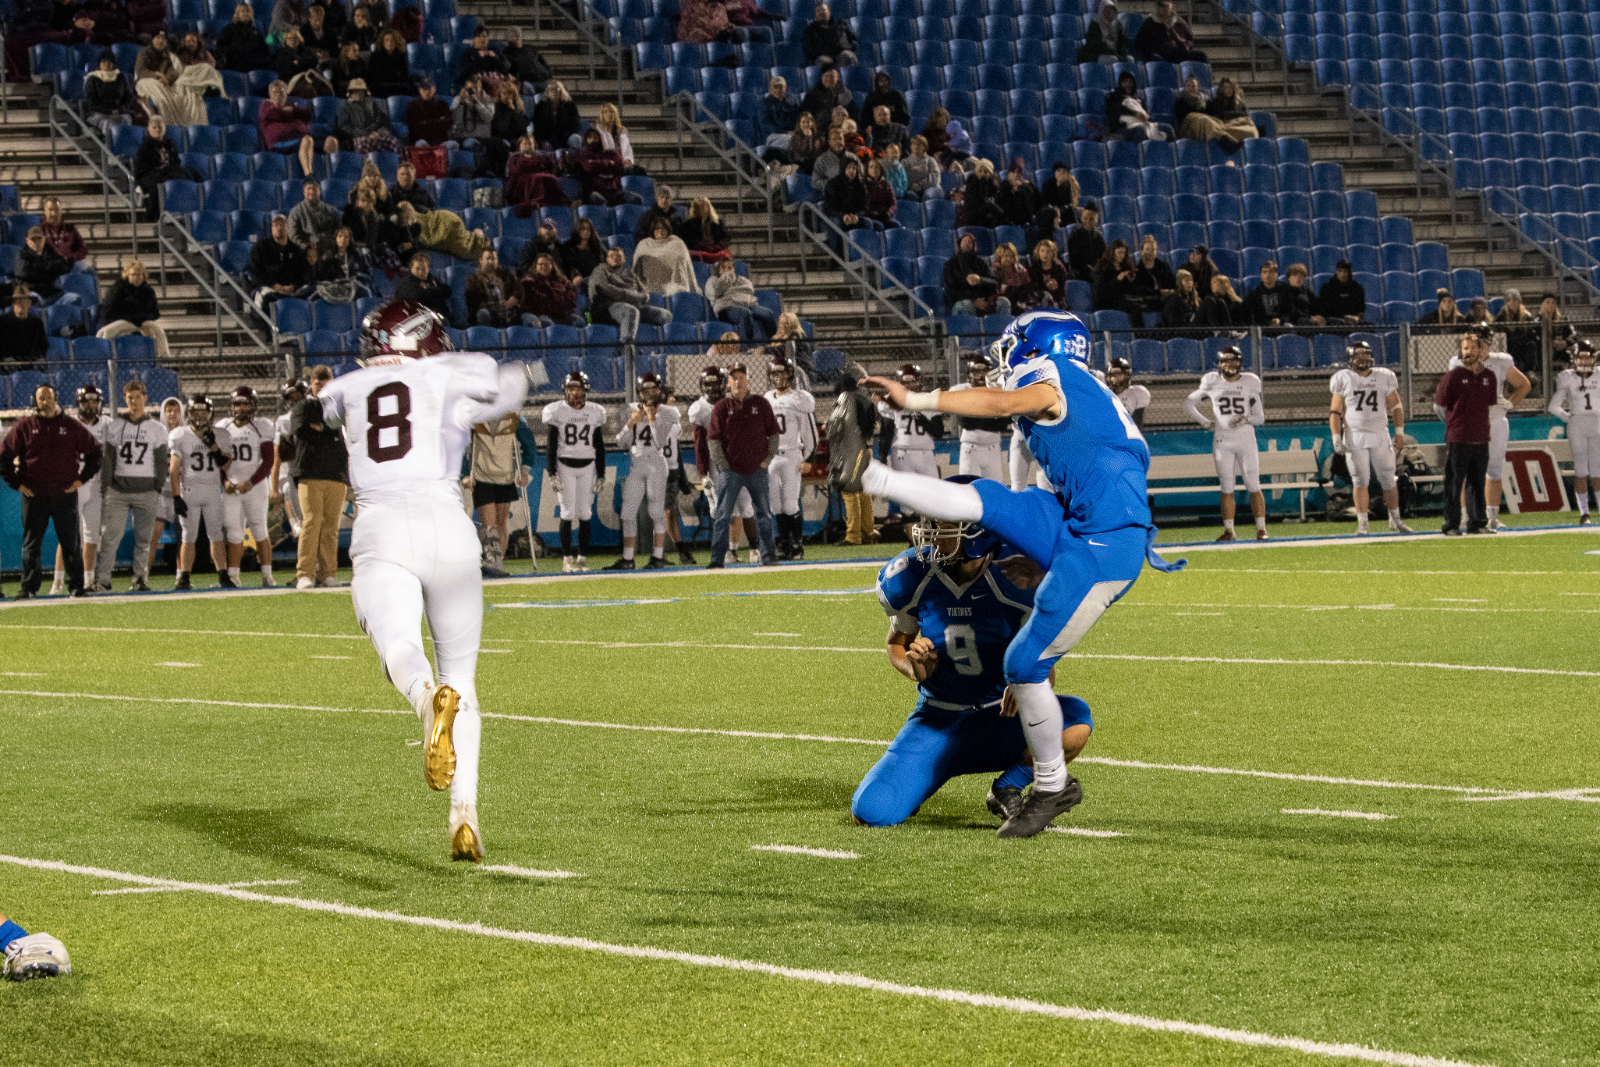 Miamisburg at Beavercreek 11/1/19 (football game and ticket information)